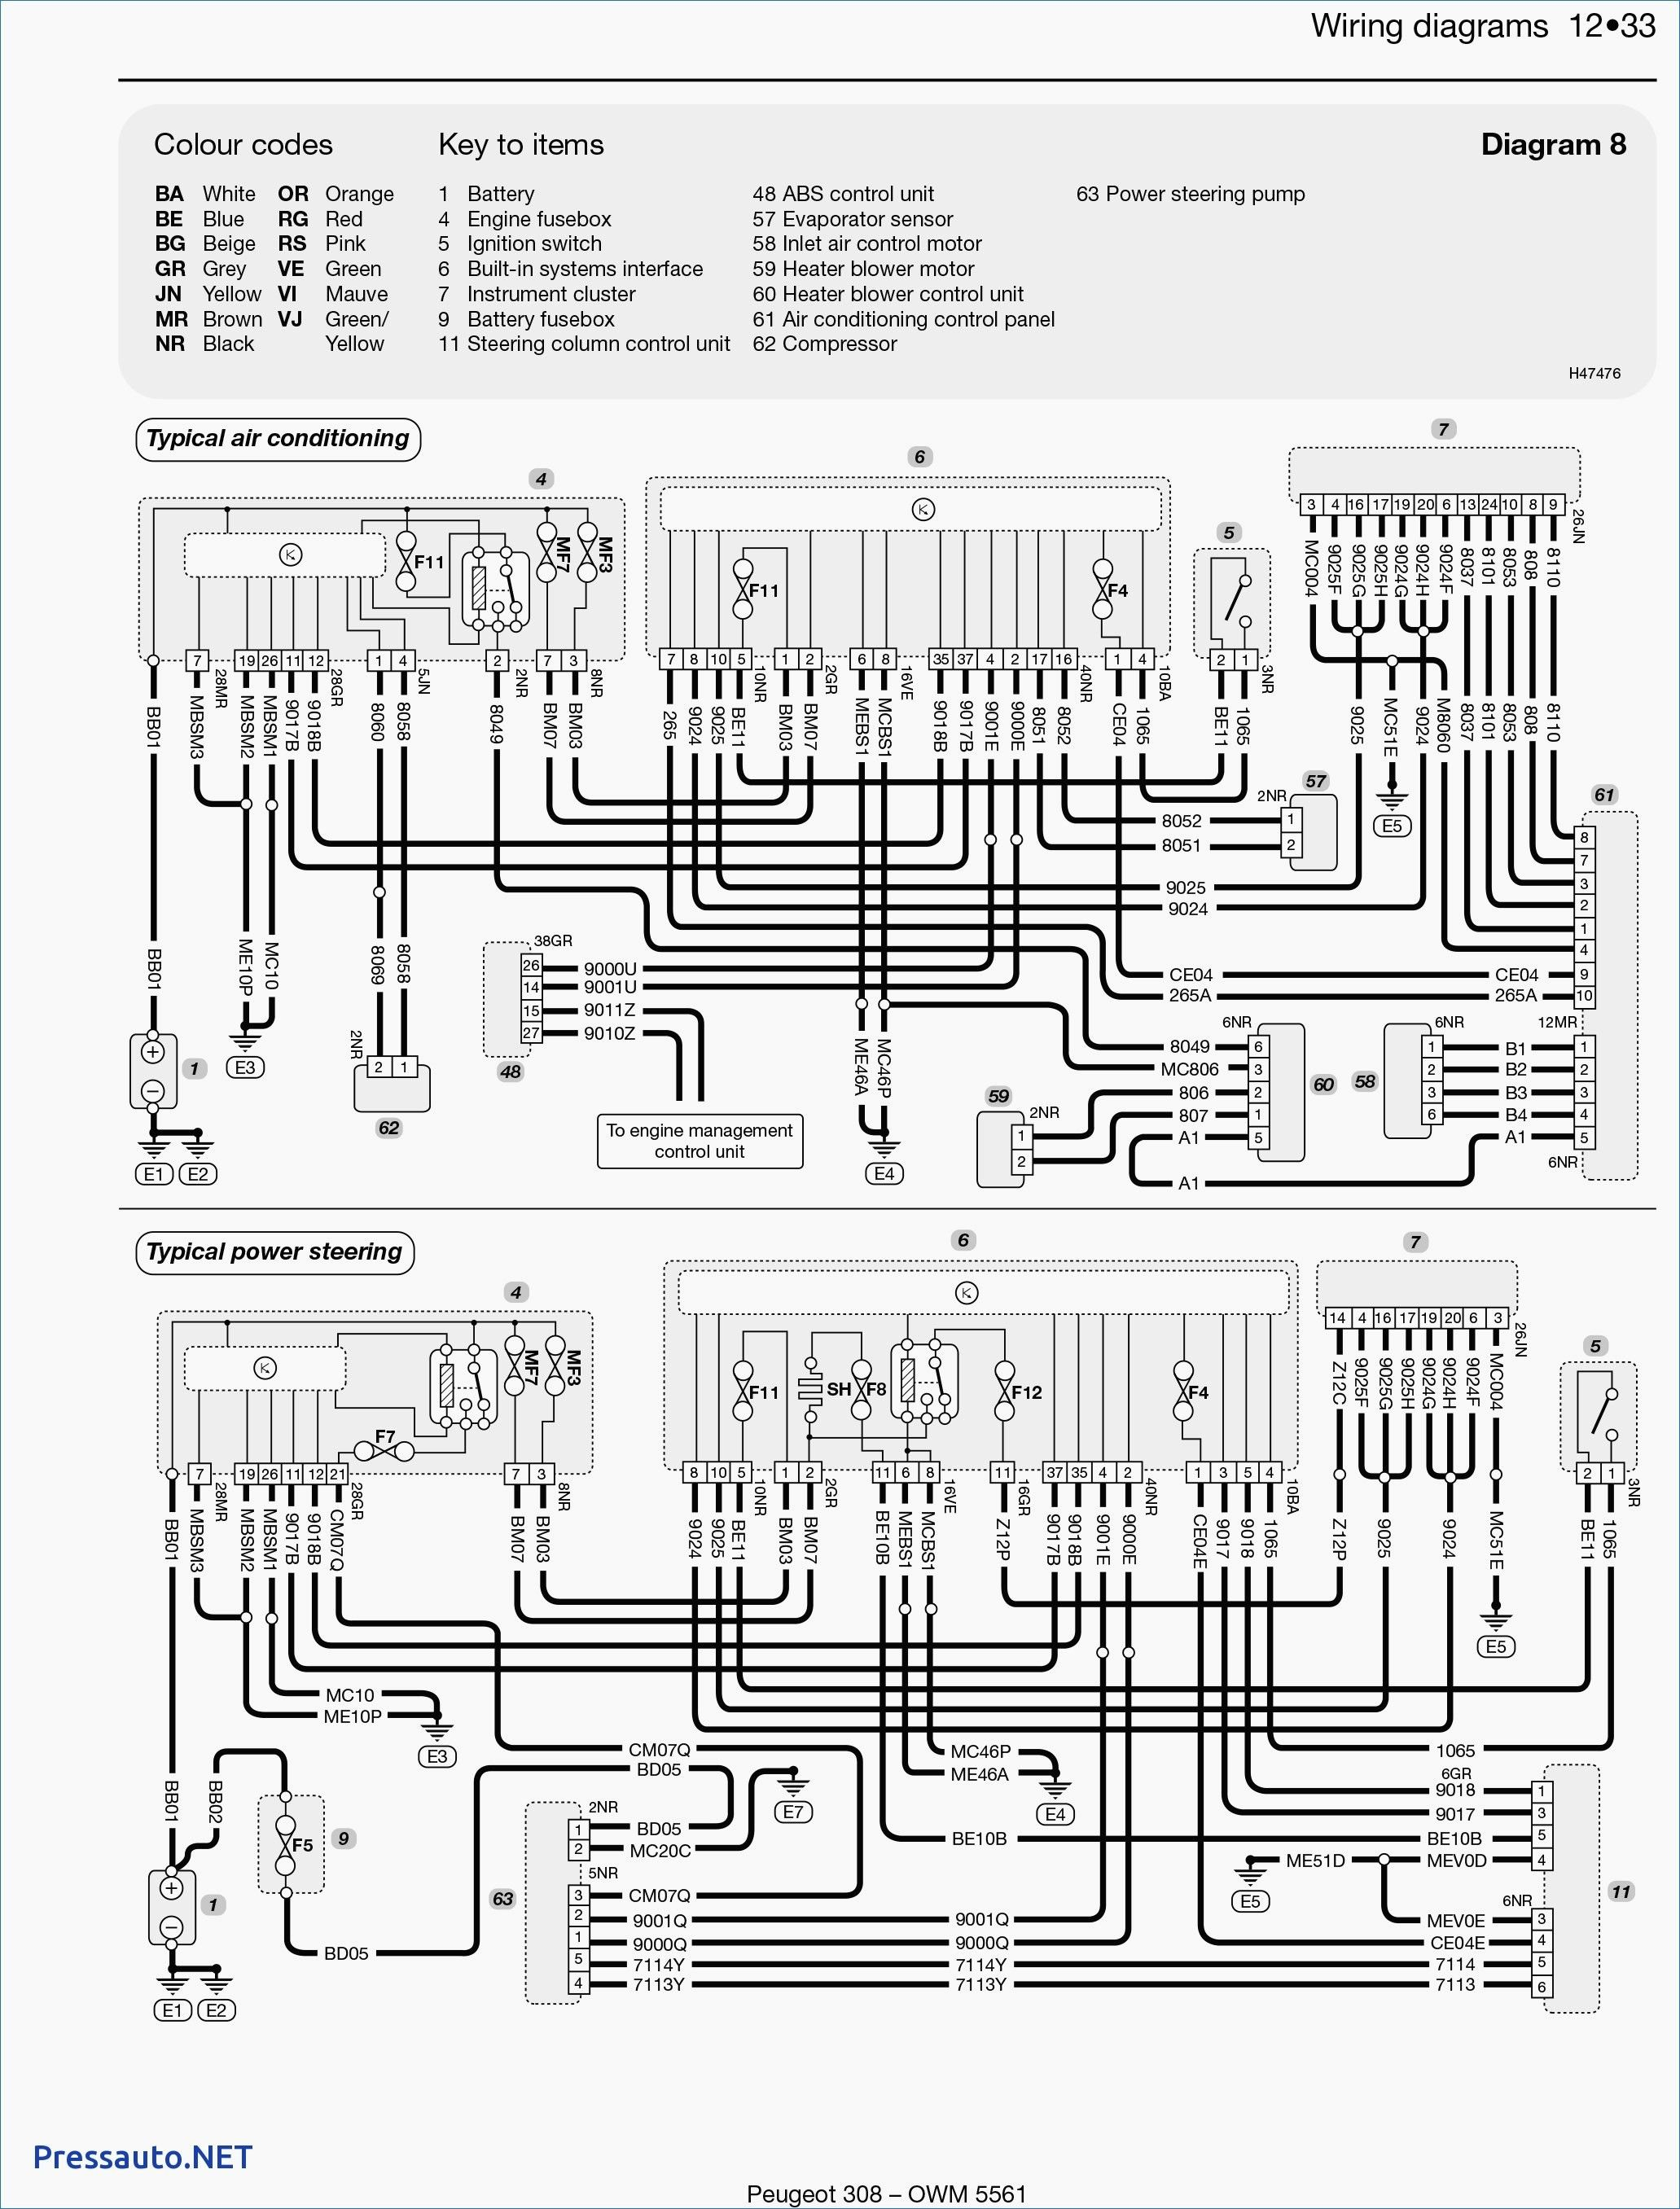 medium resolution of wiring diagram for peugeot 206 stereo best of fortable in ewolucjapeugeot 306 wiring diagram pdf further